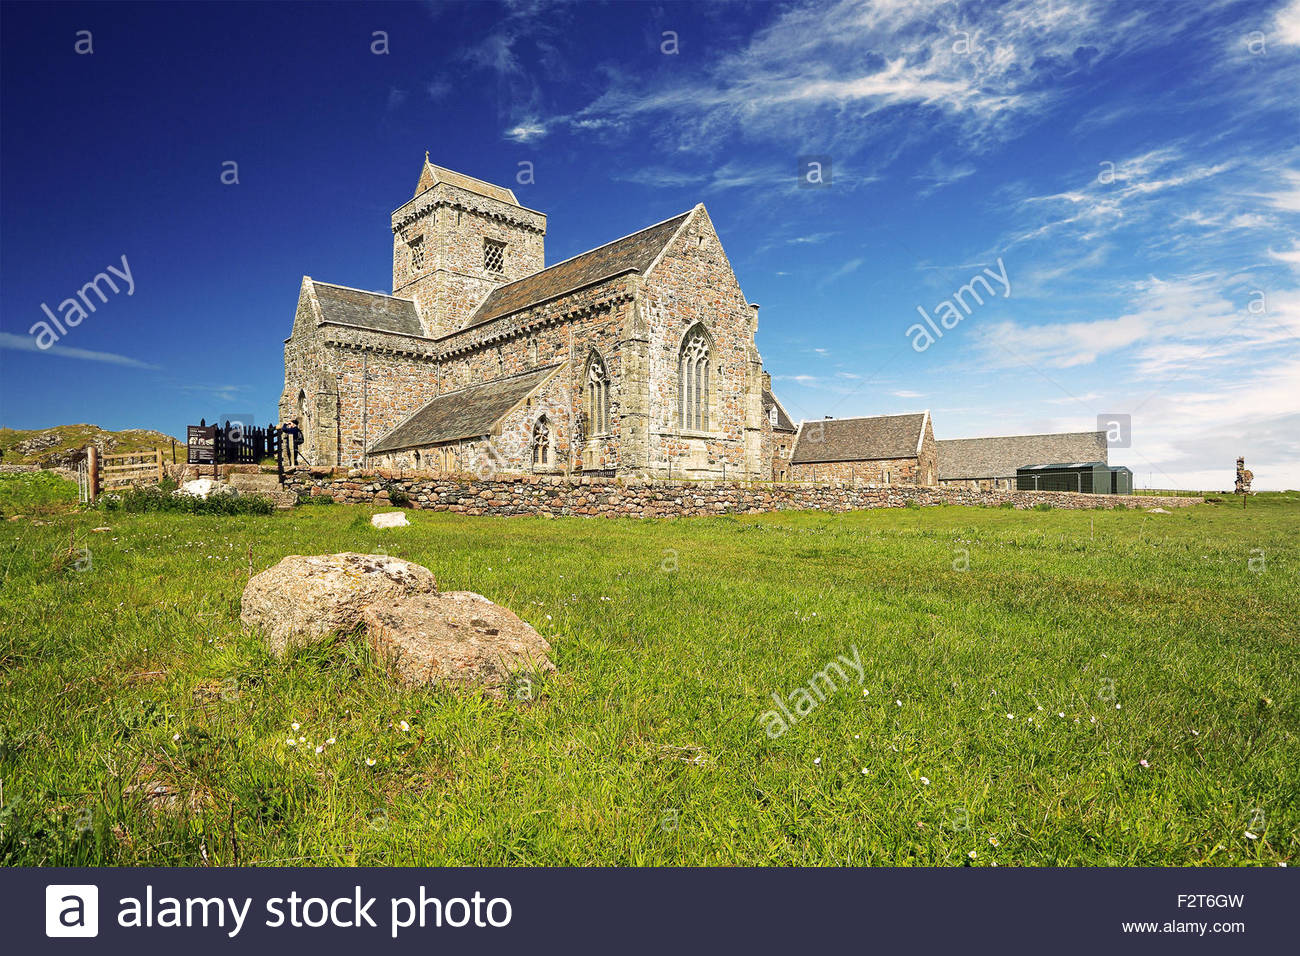 Iona abbey from the isle of Iona on a sunny day. - Stock Image